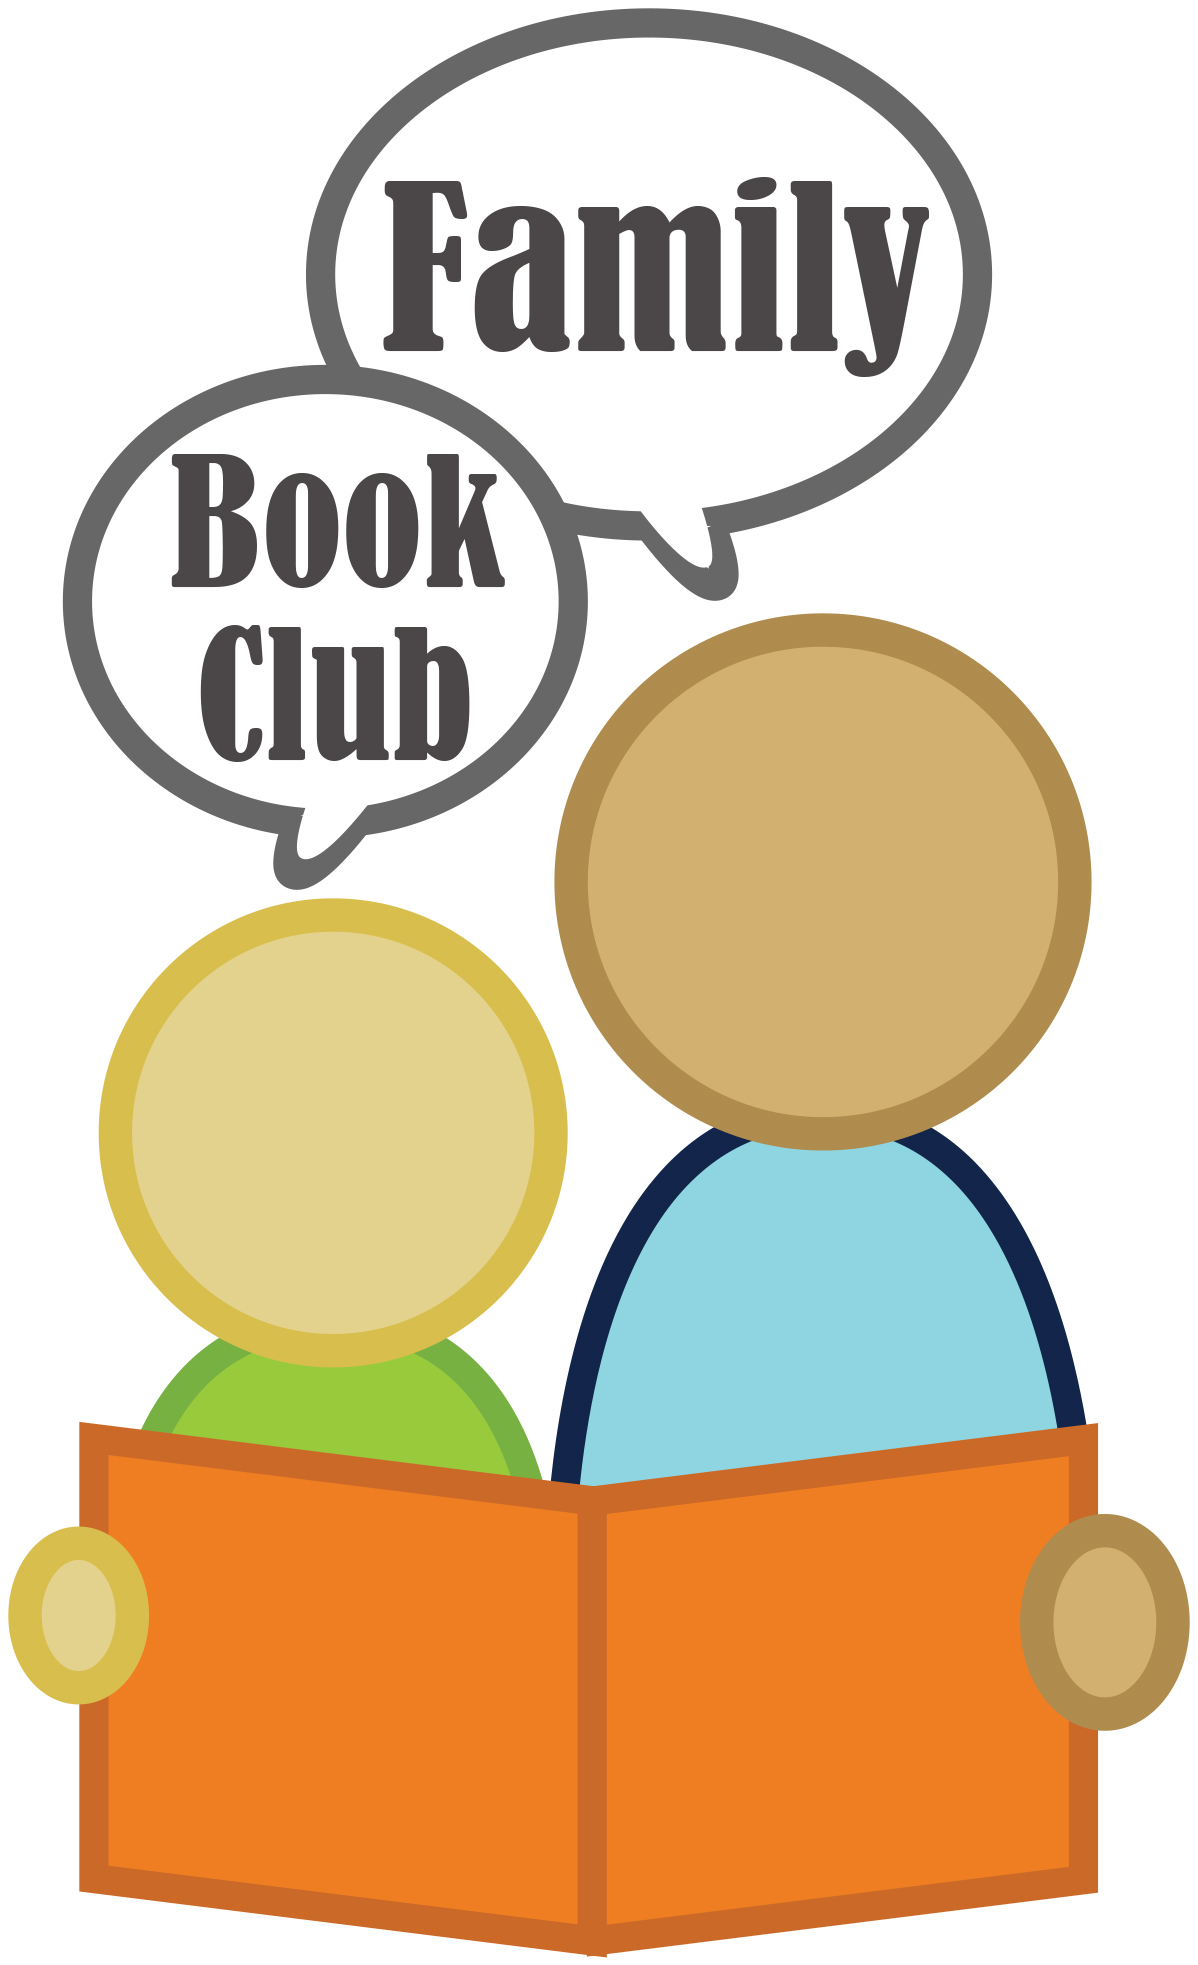 Library: Family Book Club